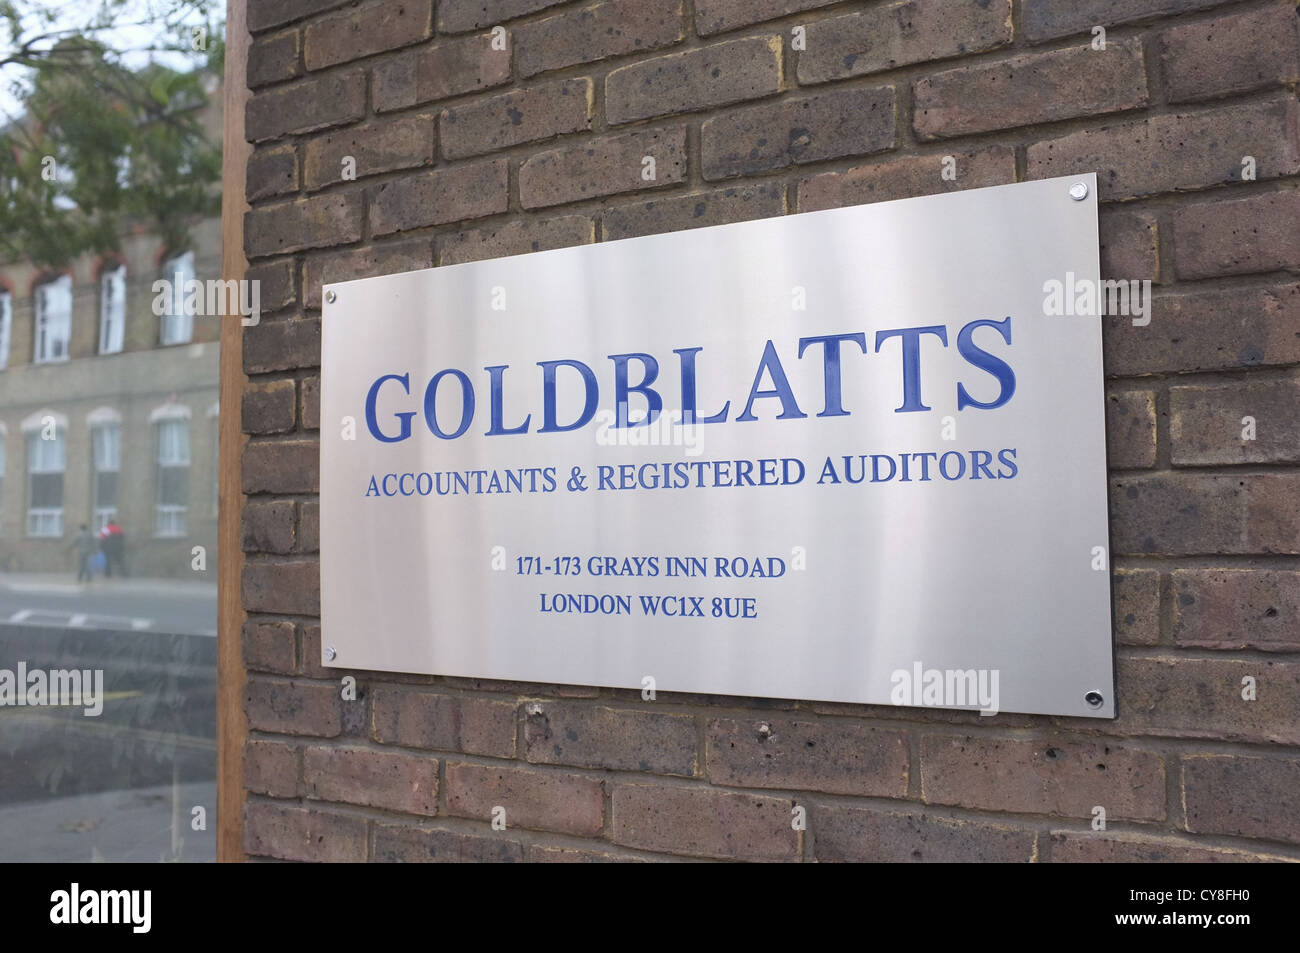 Goldblatts Accountants & Auditors in London - Stock Image